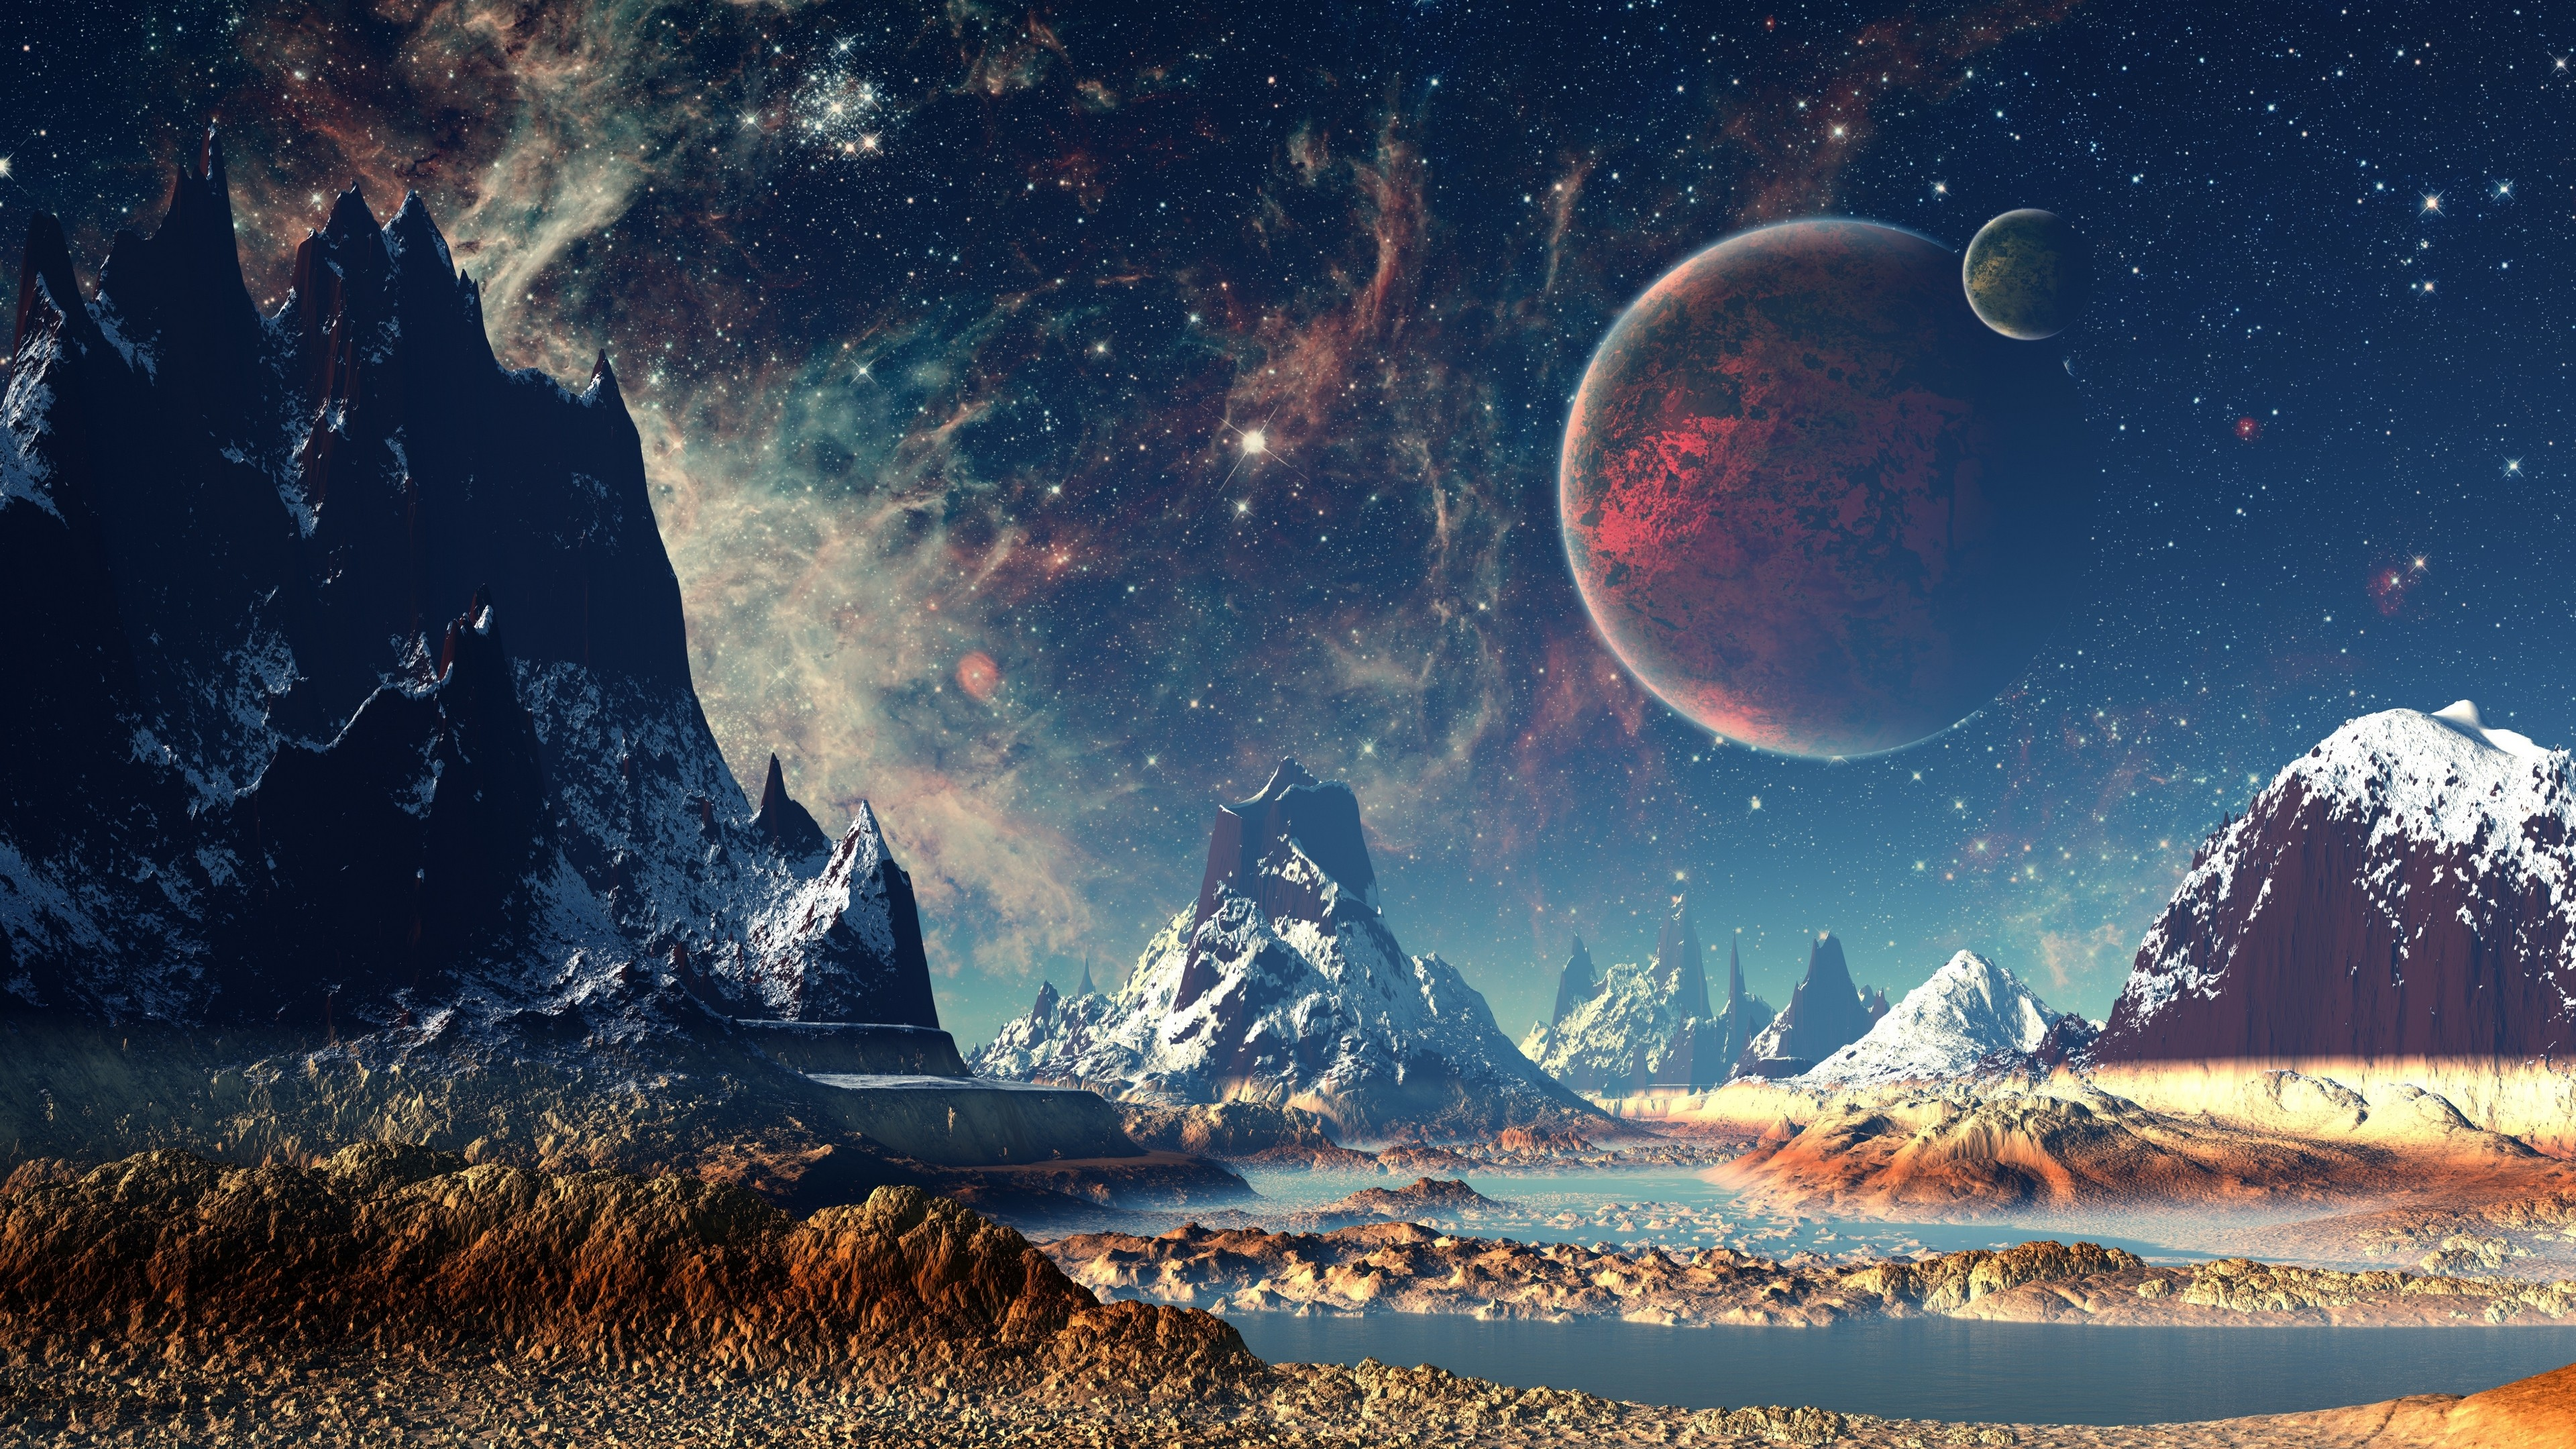 mountains stars space planets digital art artwork 4k 1540755443 - Mountains Stars Space Planets Digital Art Artwork 4k - stars wallpapers, space wallpapers, planets wallpapers, mountains wallpapers, hd-wallpapers, digital art wallpapers, artwork wallpapers, artist wallpapers, 4k-wallpapers